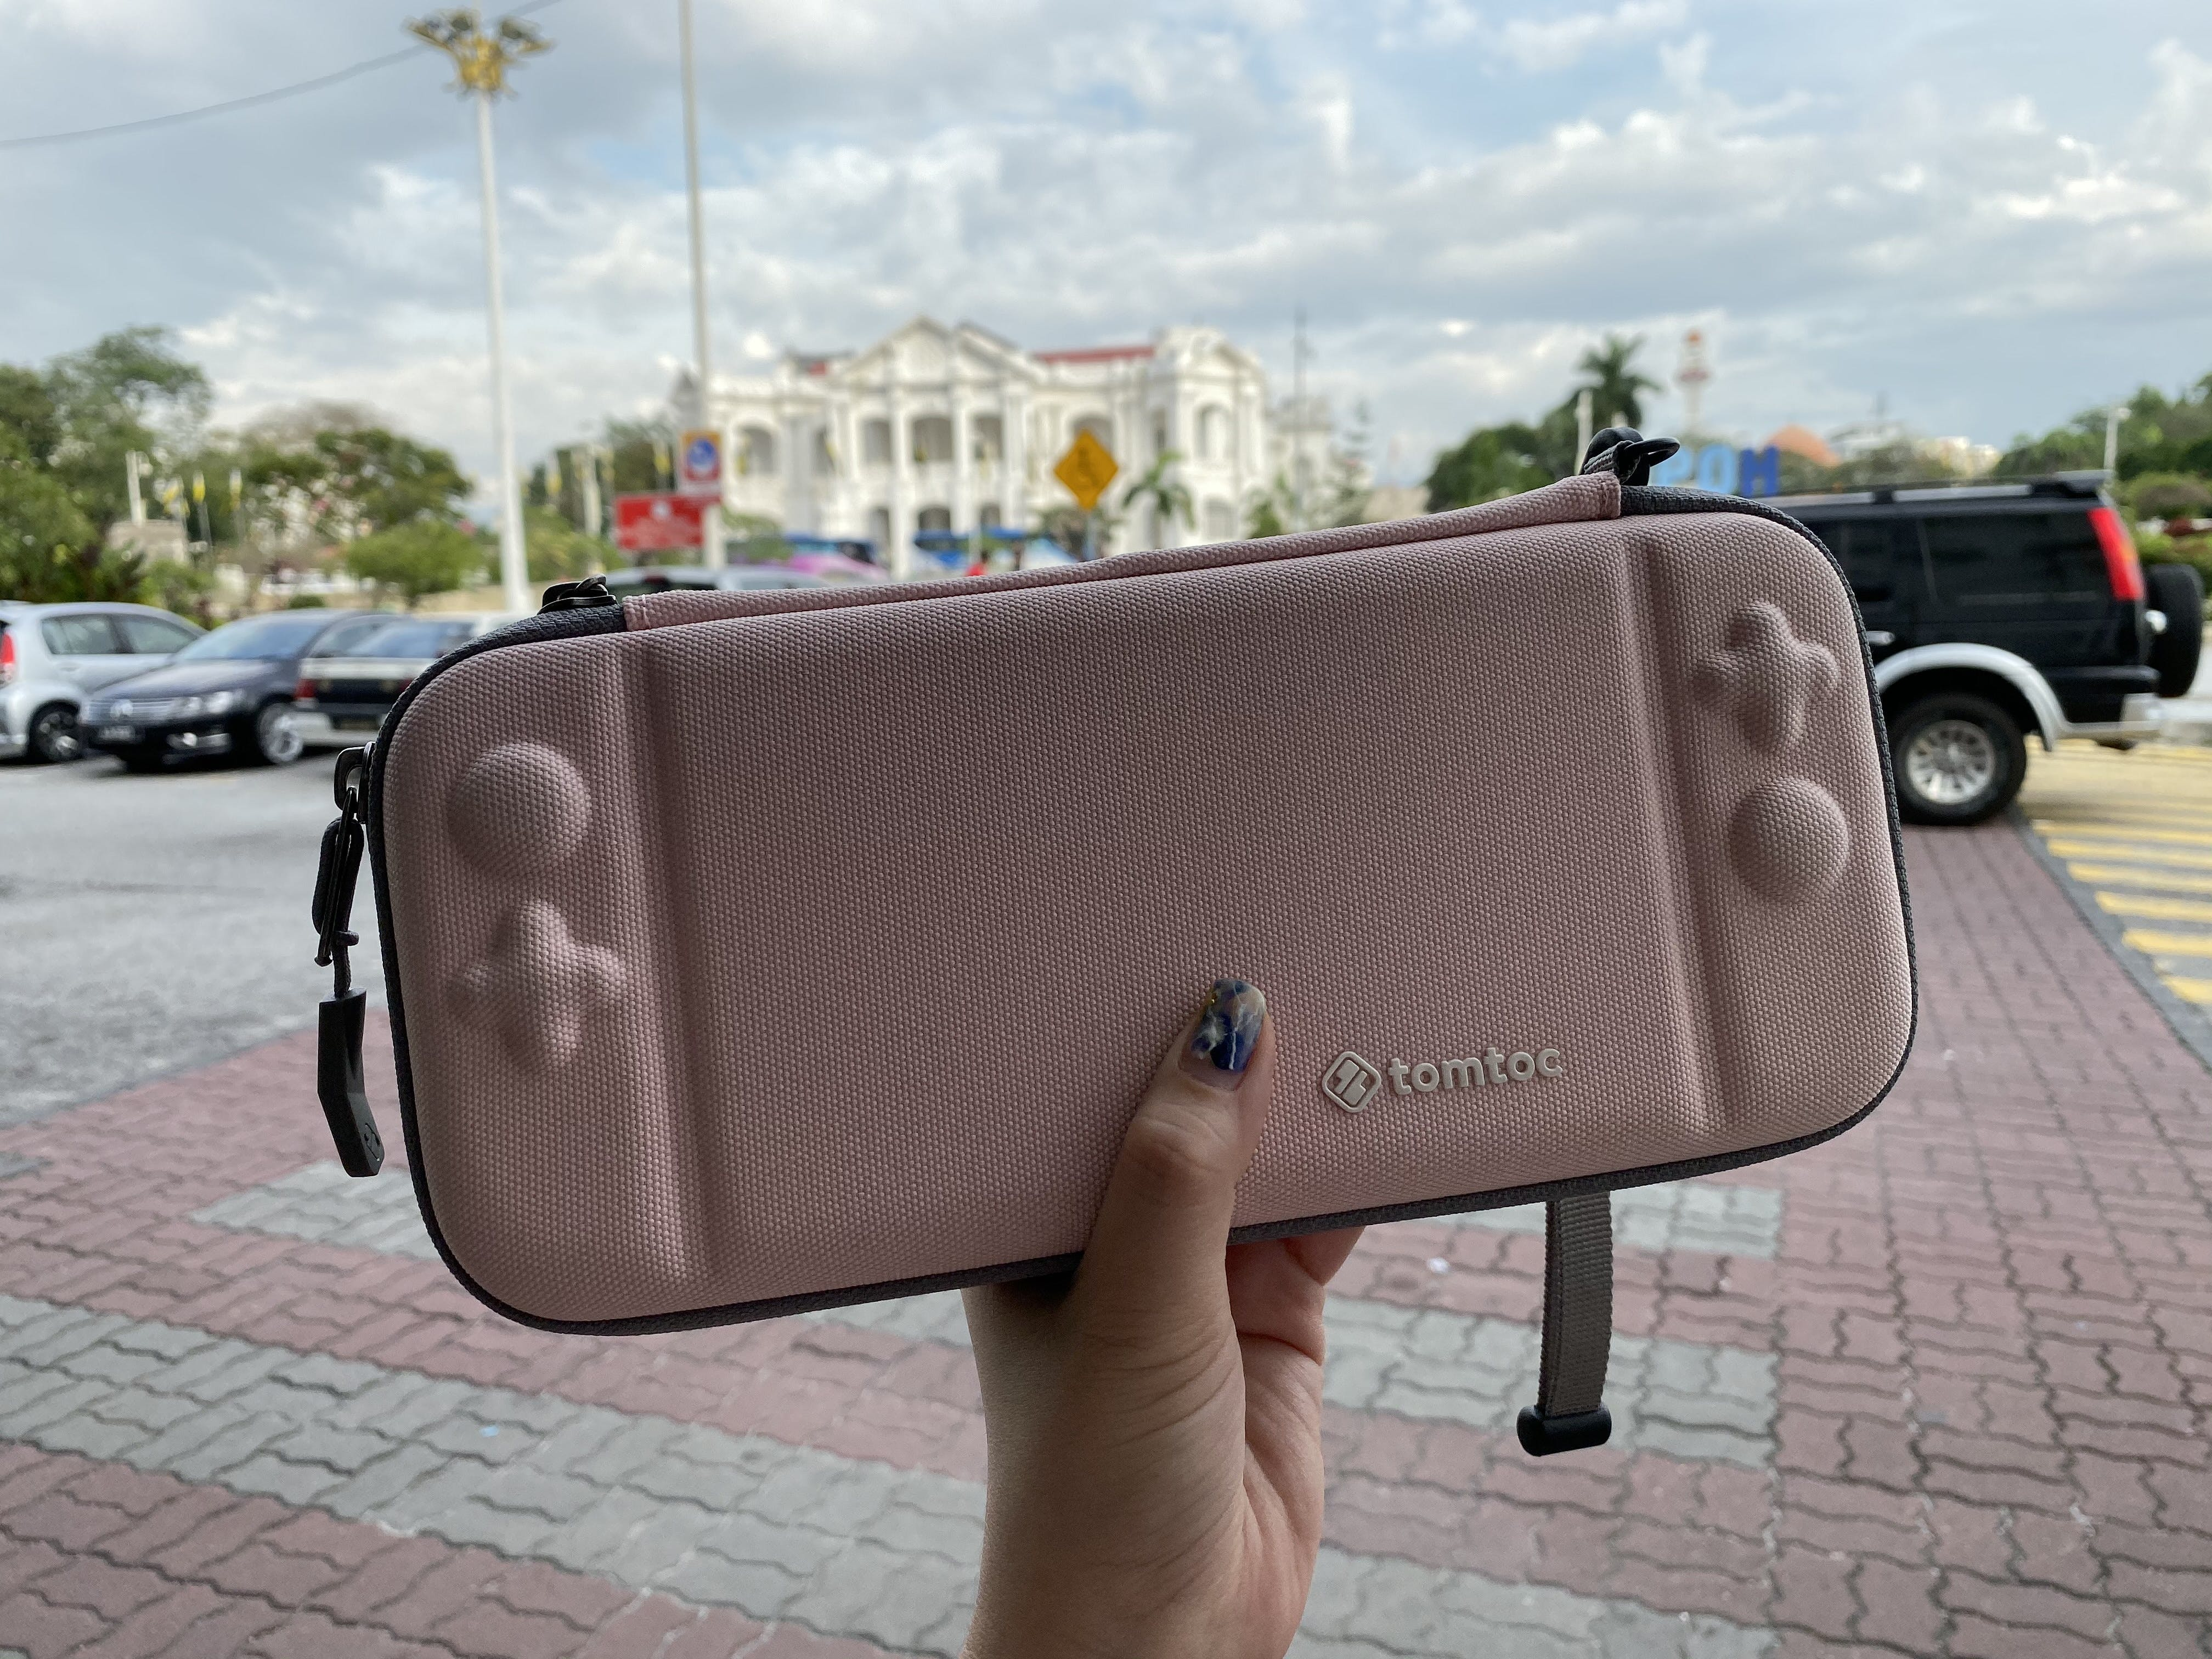 Tomtoc's new case for Nintendo Switch is amazing. It's waterproof and fits into my bag easily.